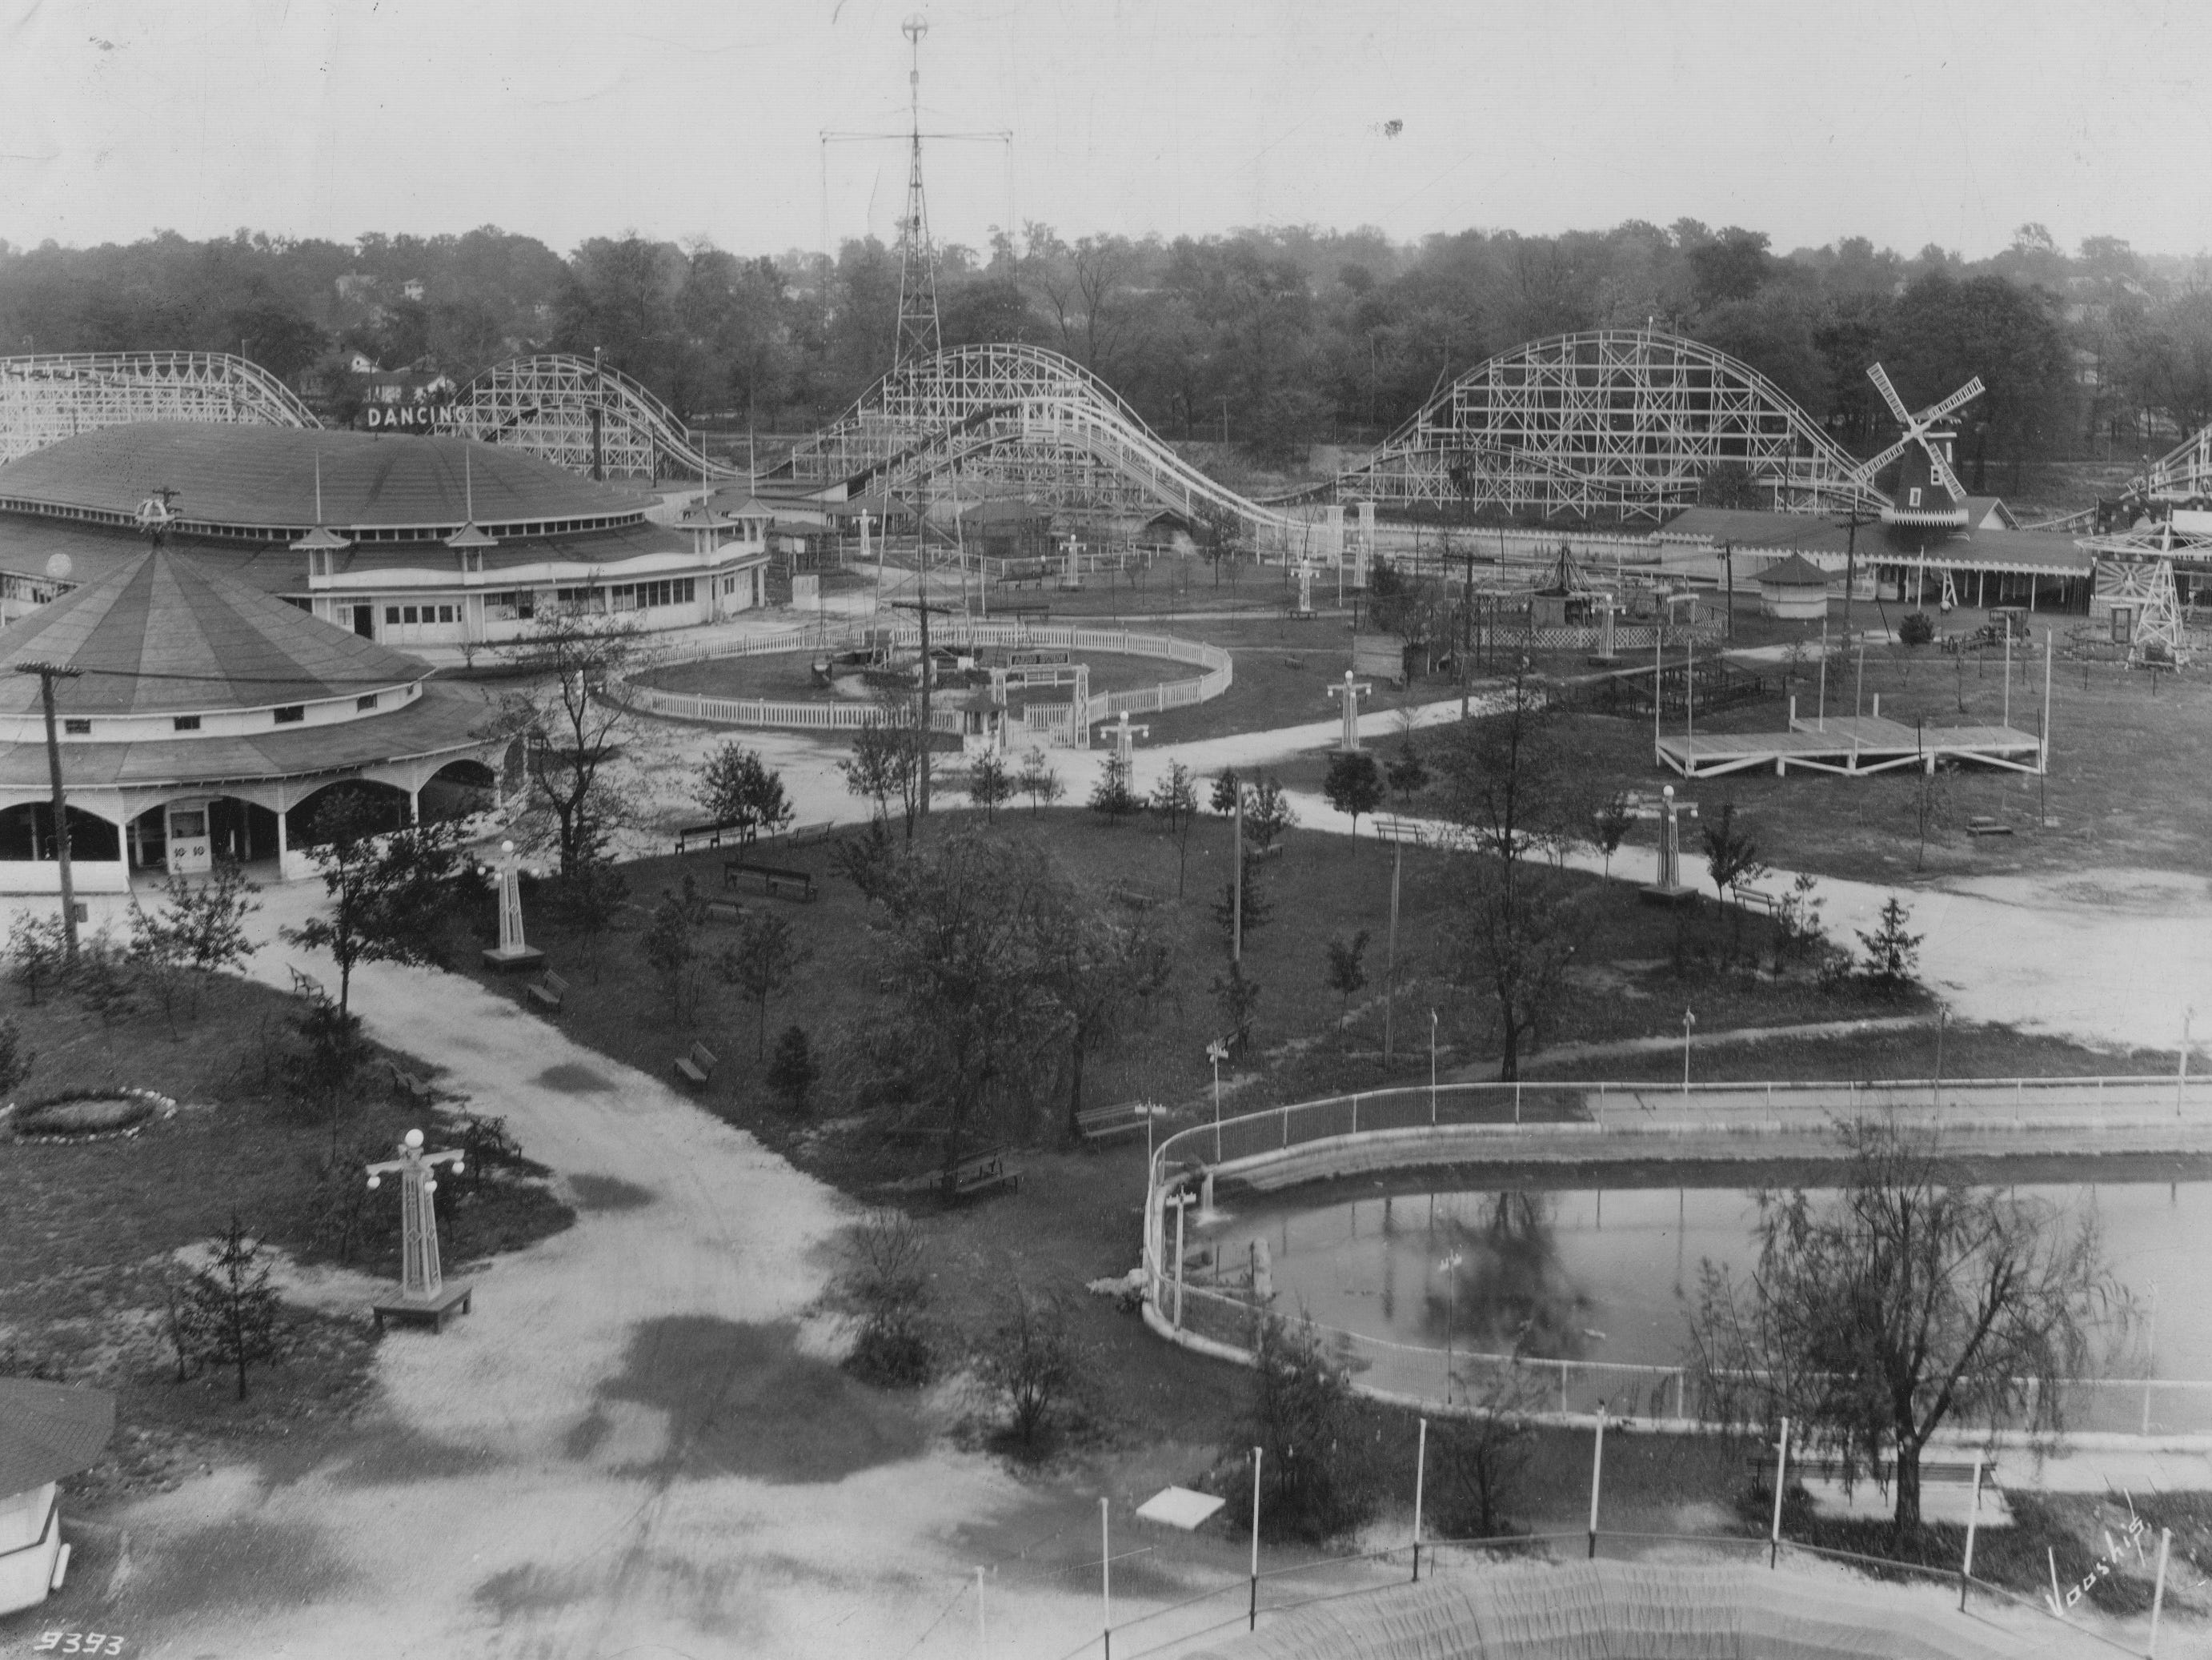 1928 Indianapolis Star file photo of Riverside Amusement Park.  The carousel to the left with the roller rink behind it (also served as the dance hall)  The roller coaster and the aerial swing  and the Dutch windmill.